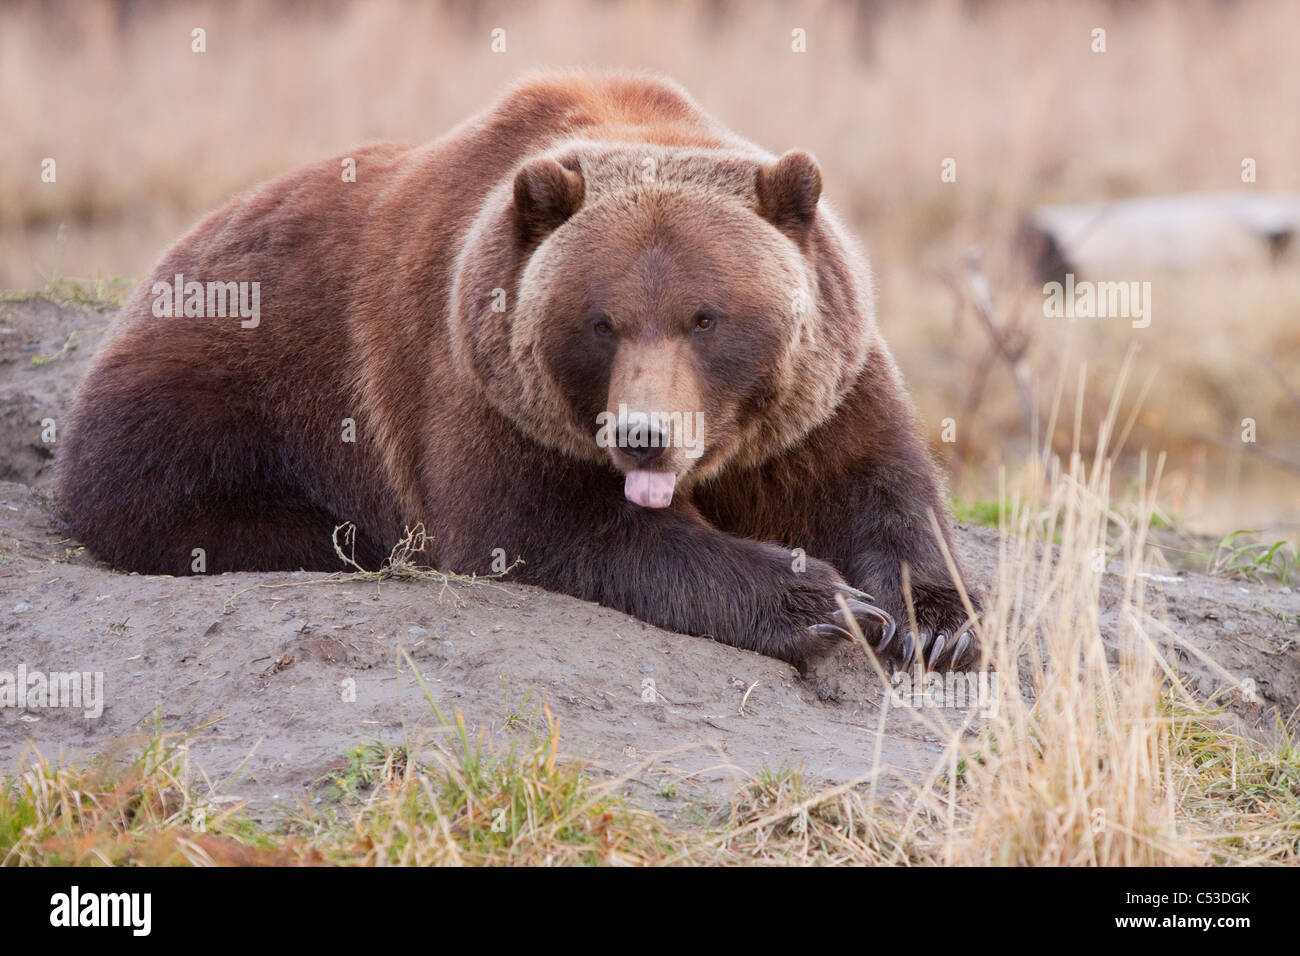 A Grizzly bear lays on a dirt mound at Alaska Wildlife Conservation Center with its tongue hanging out, Alaska. - Stock Image